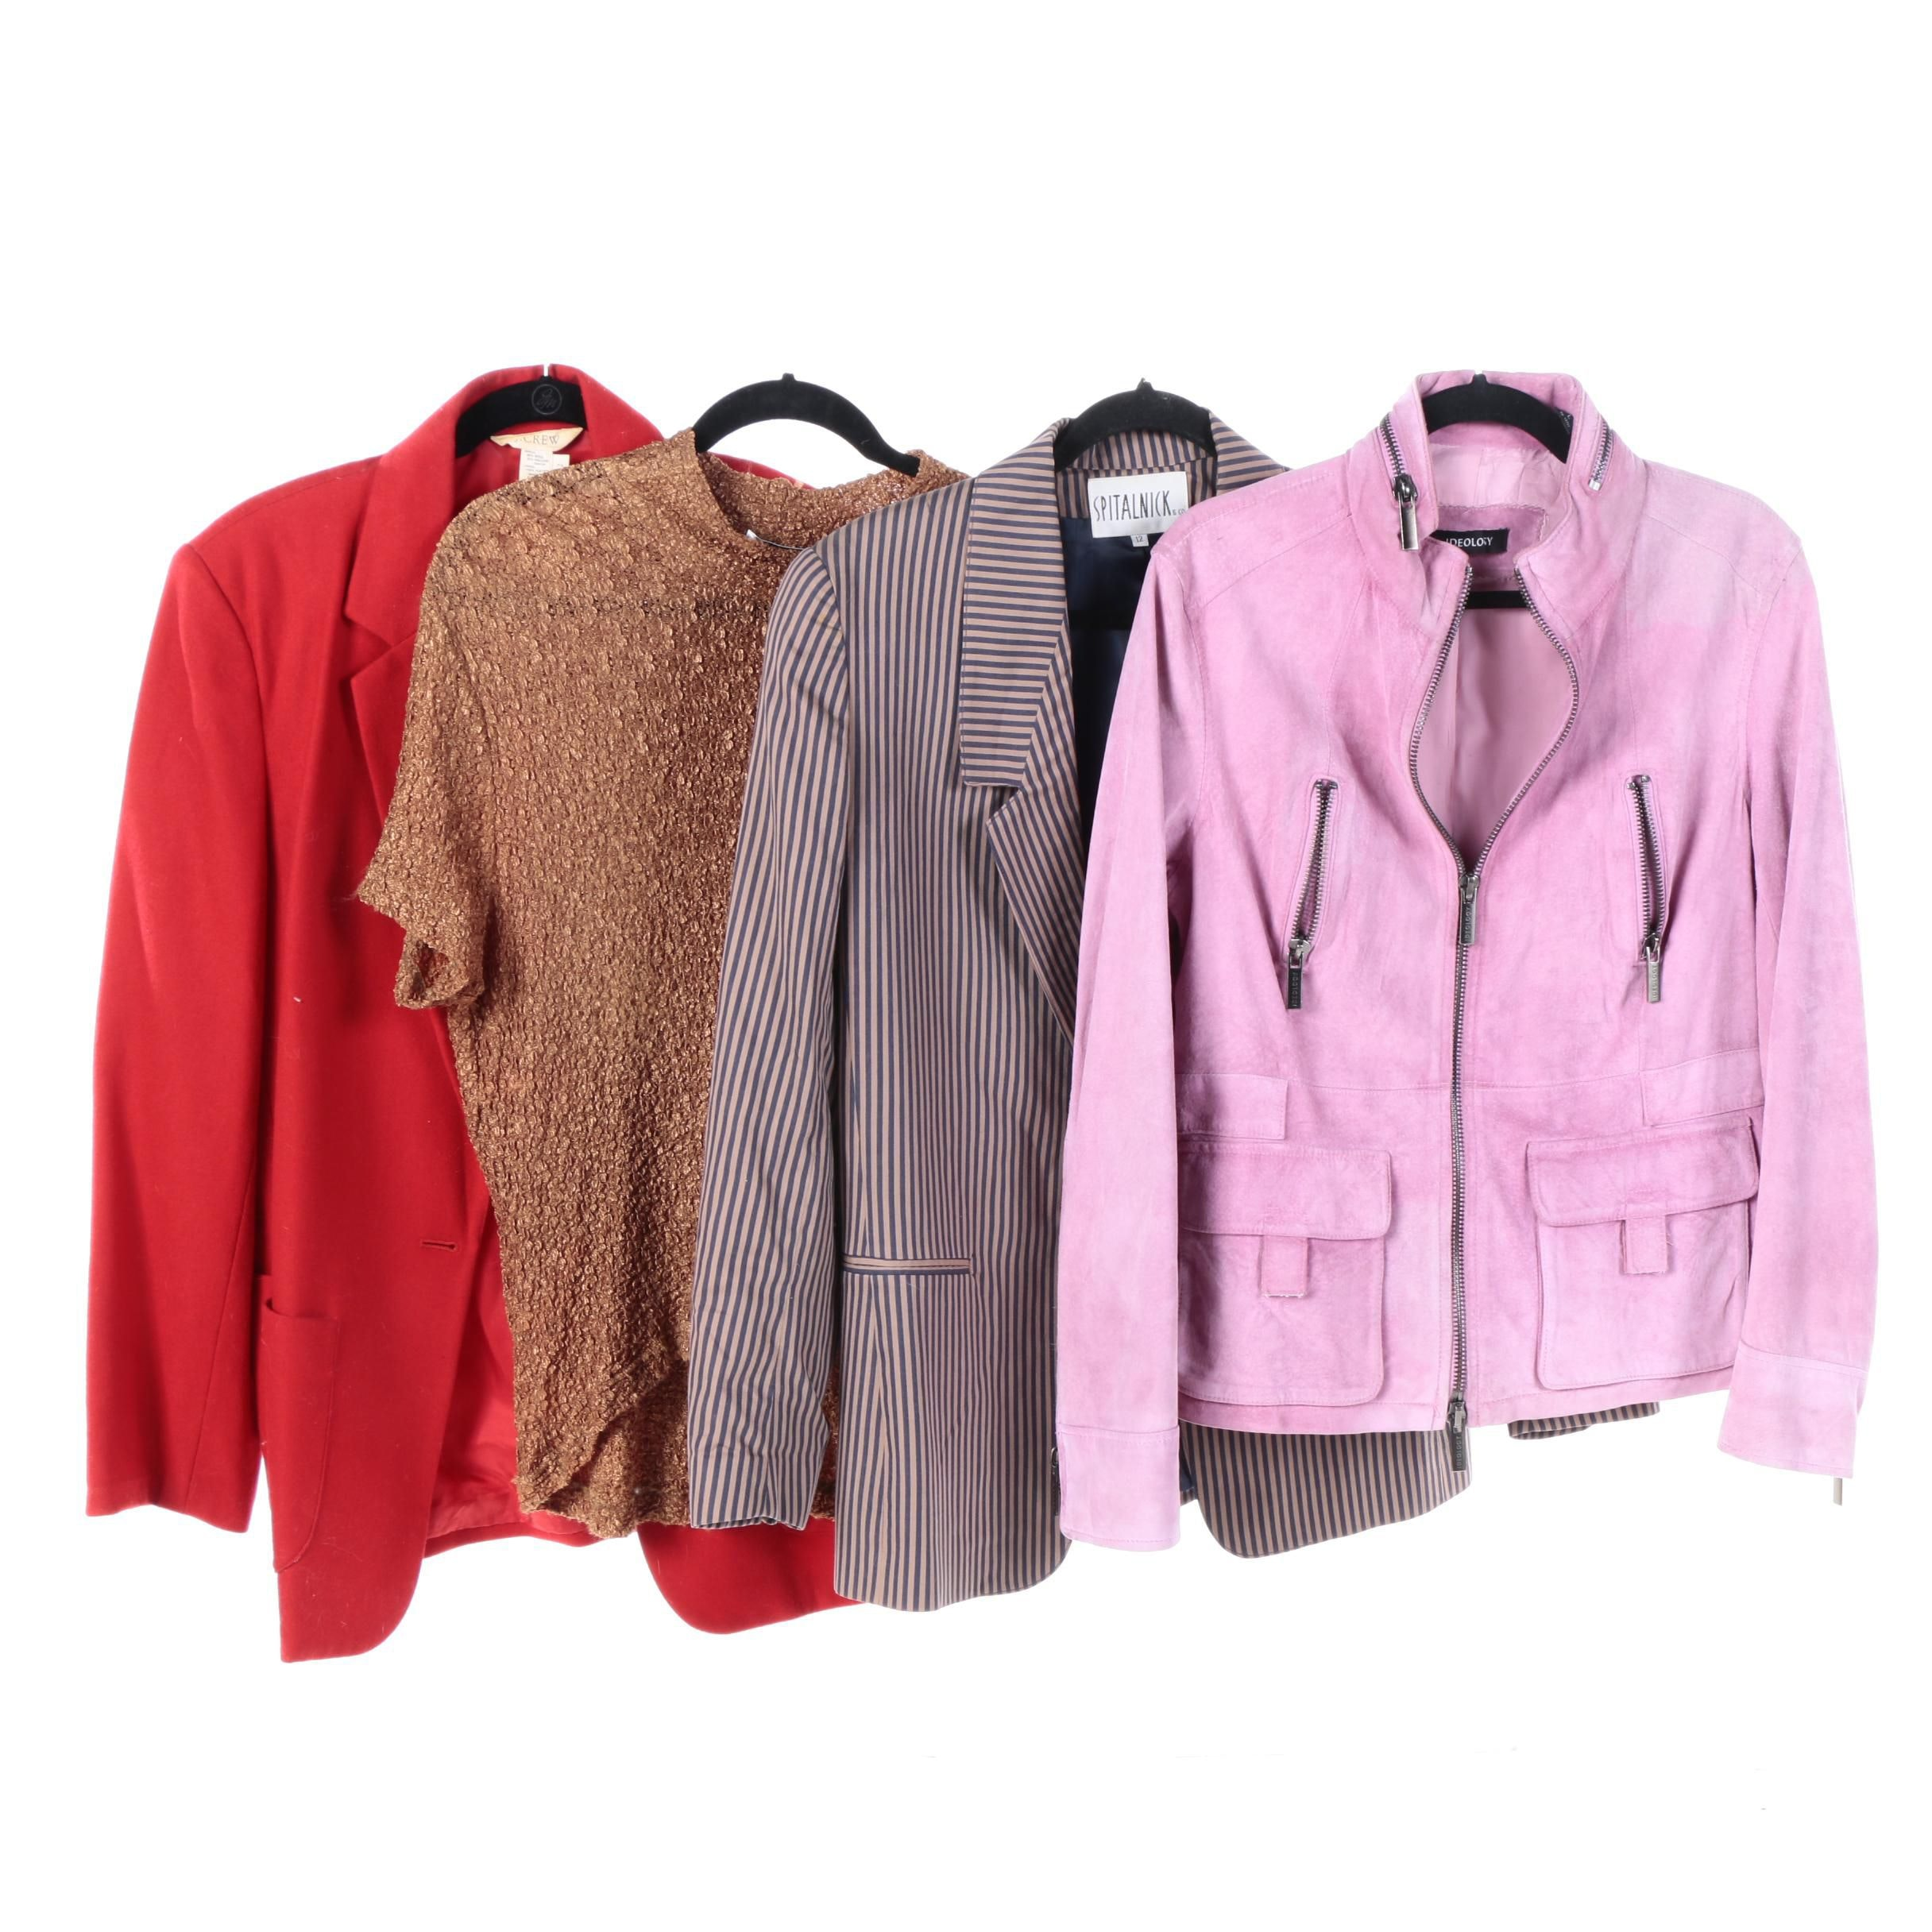 Women's Jackets and Blouse Including J.Crew and Ideology